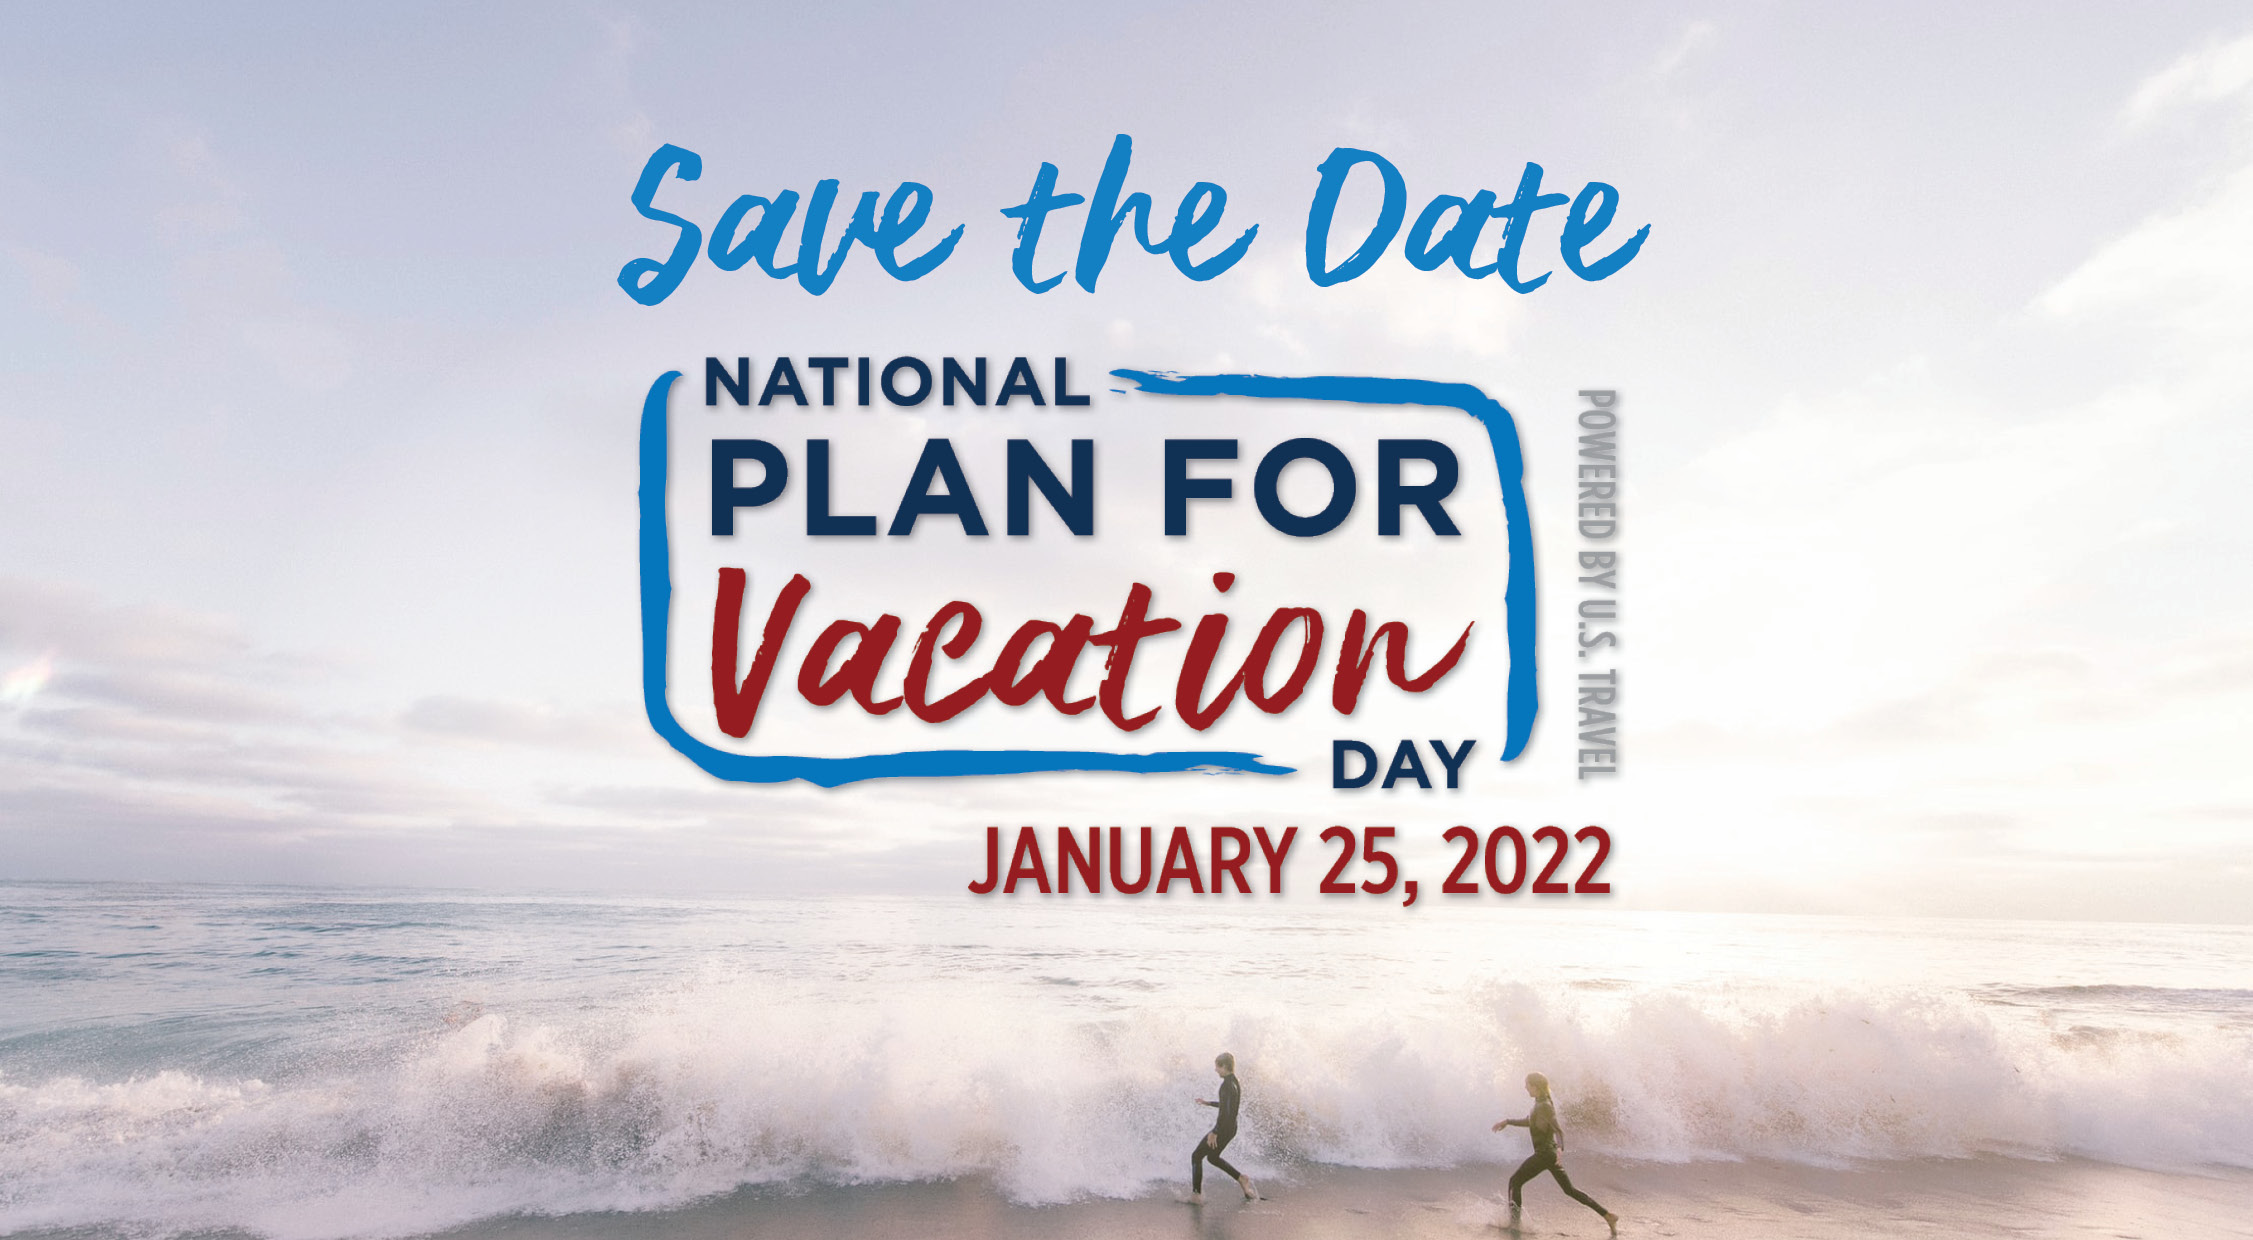 Save the Date for National Plan for Vacation Day: January 25, 2022